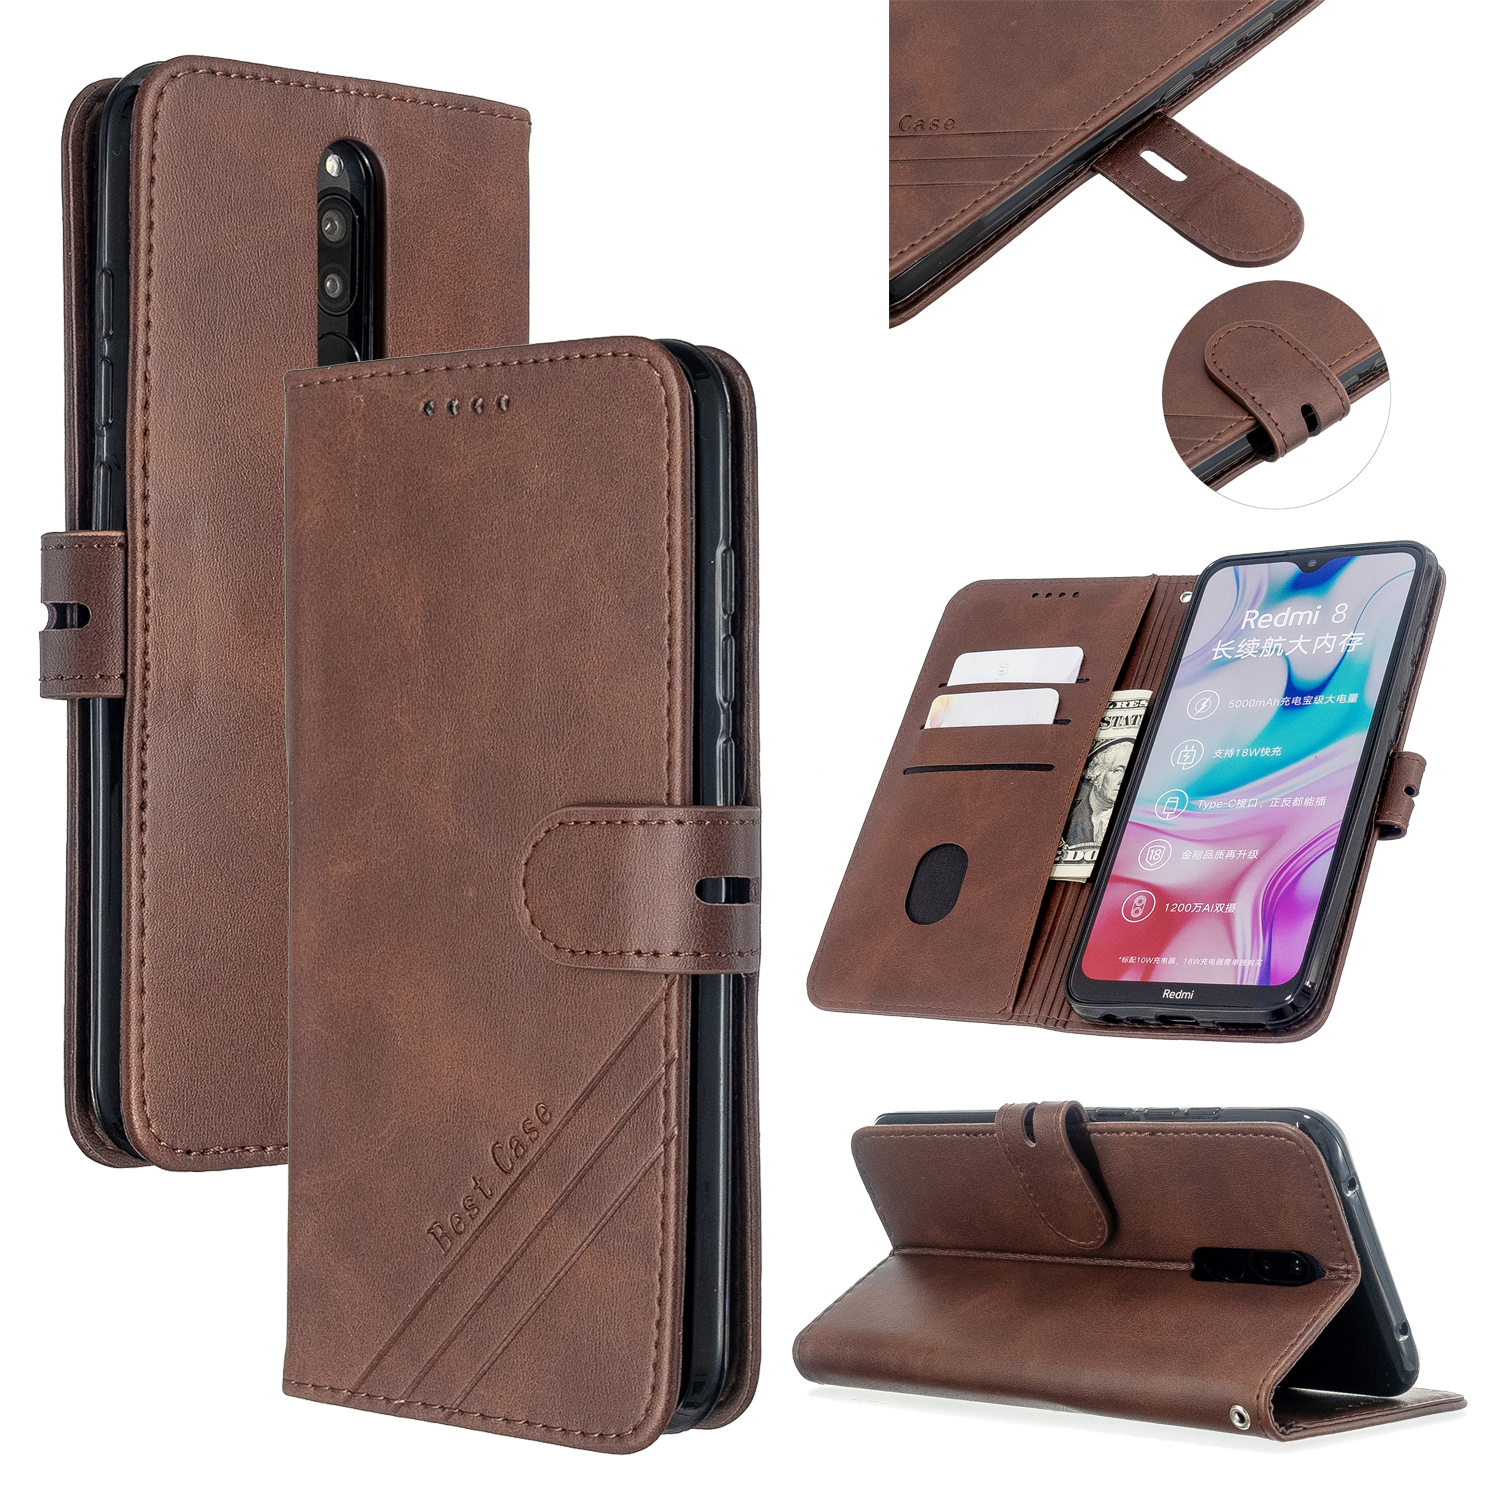 For Redmi Note 8T/Redmi 8/Redmi 8A Case Soft Leather Cover with Denim Texture Precise Cutouts Wallet Design Buckle Closure Smartphone Shell  brown